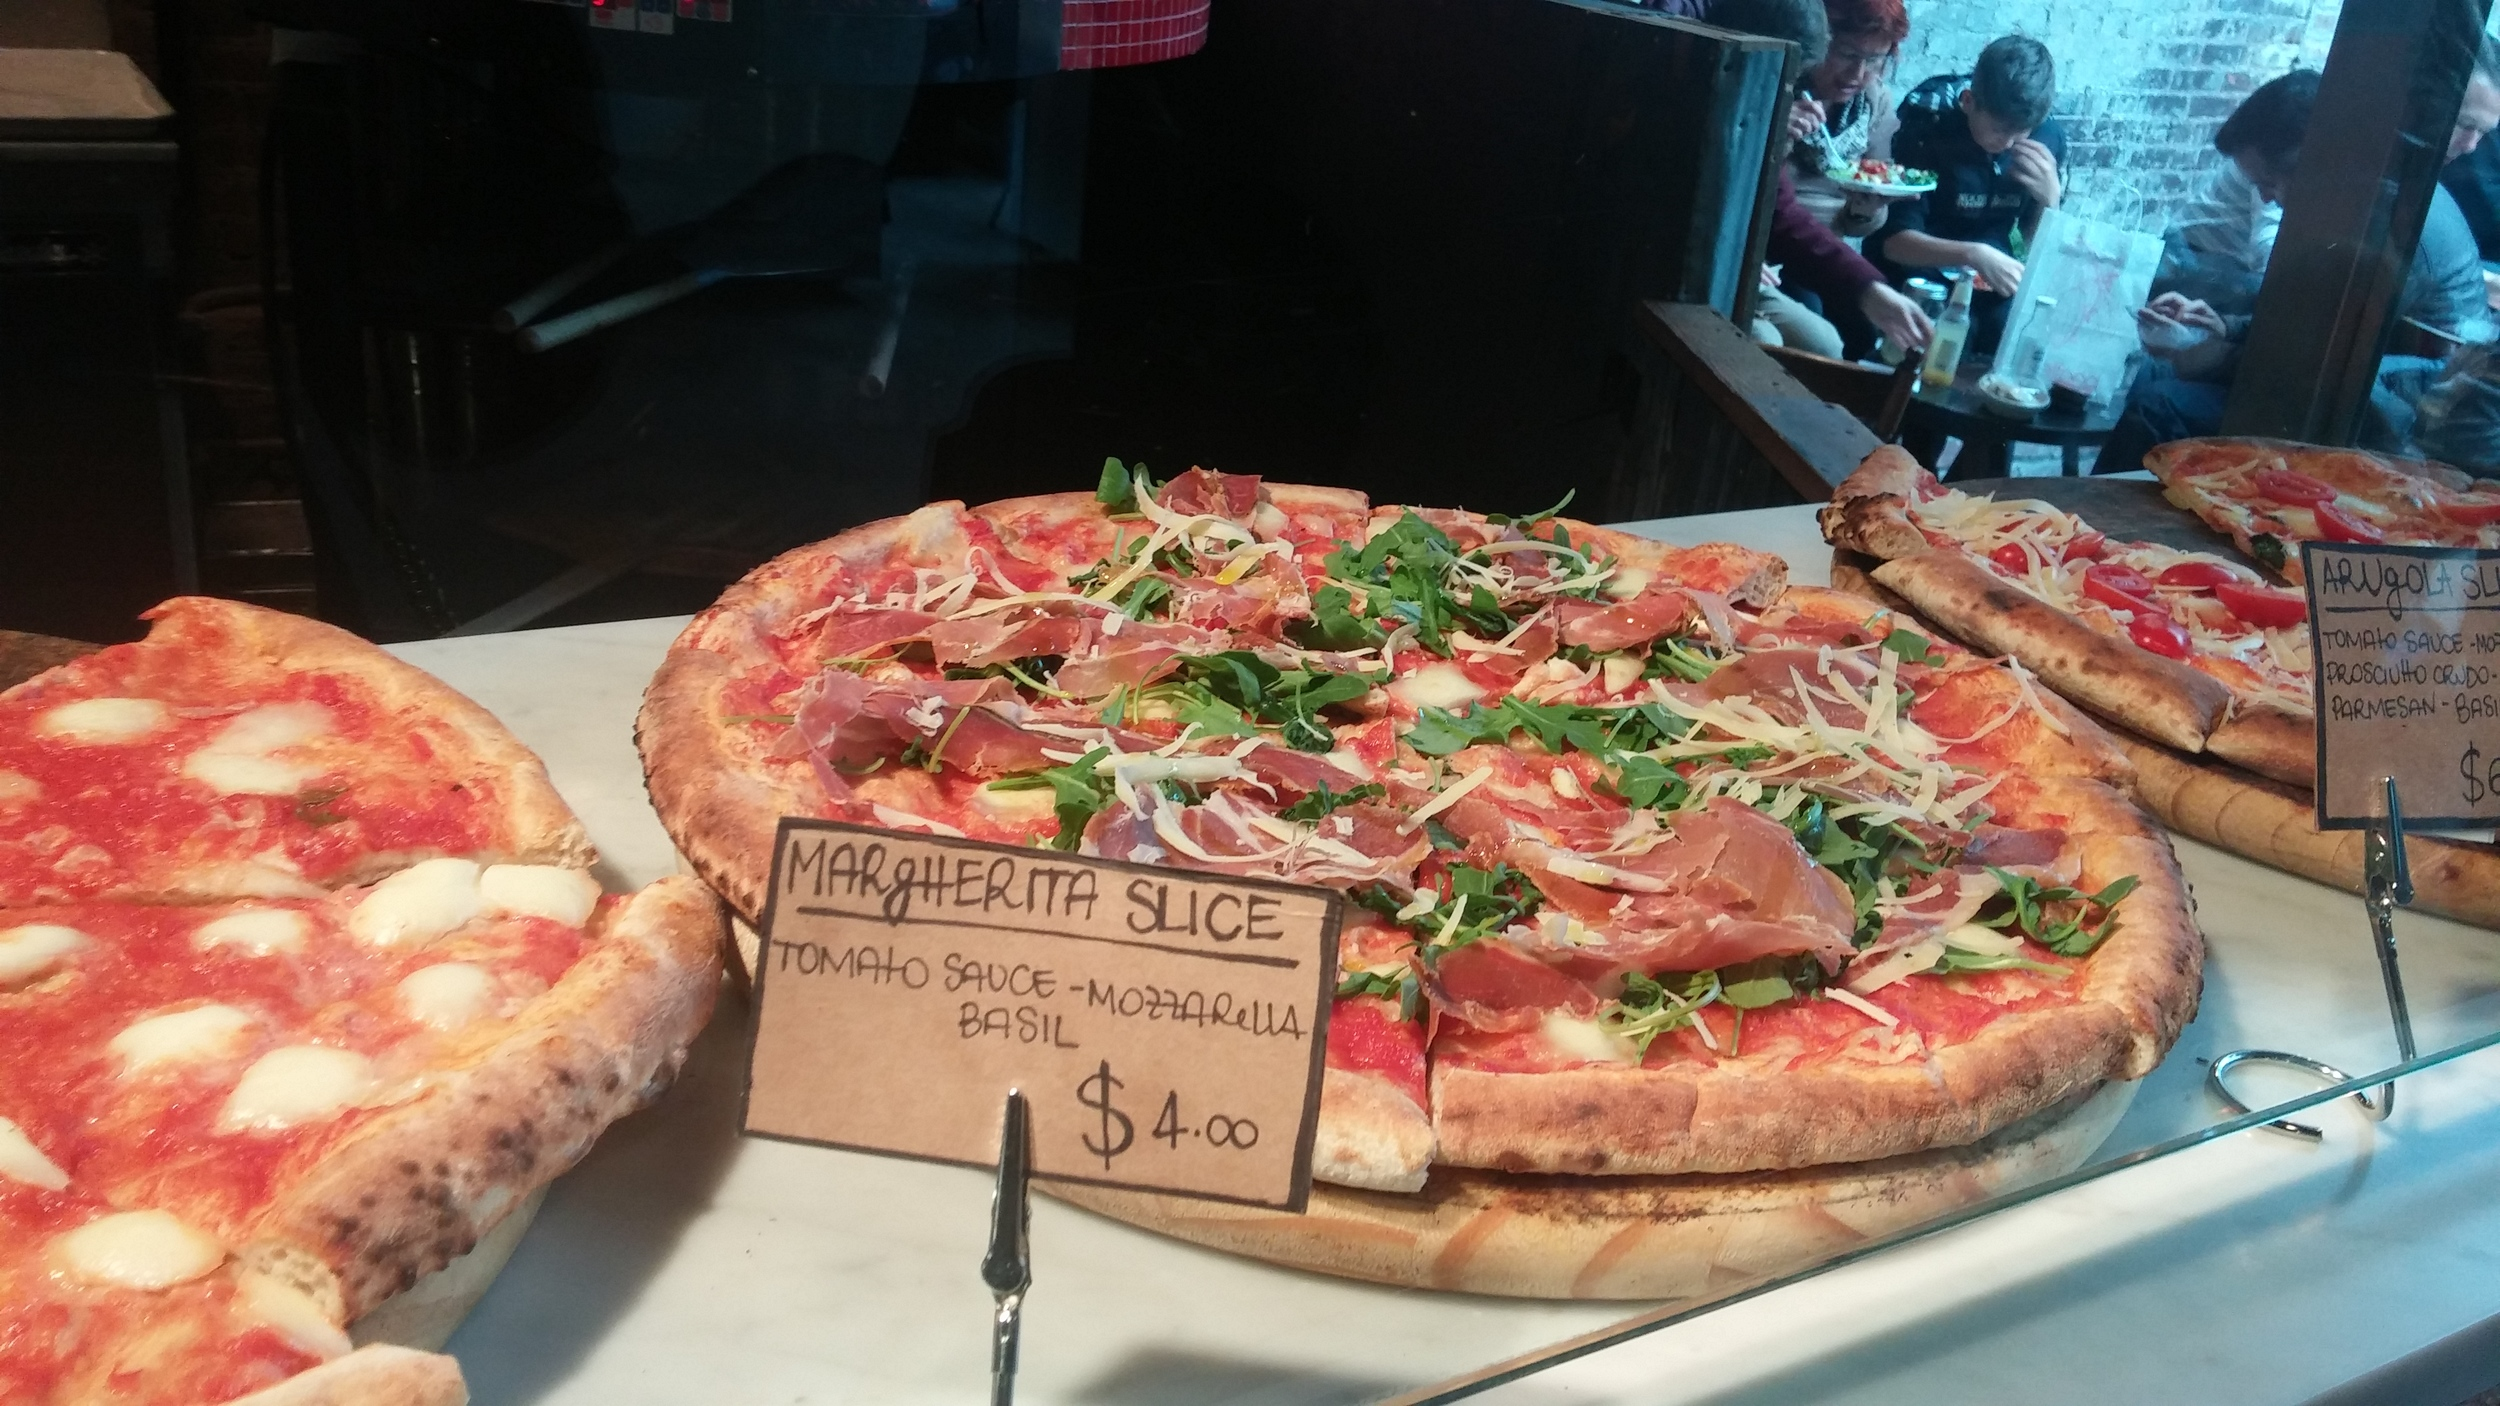 Always stop by Luzzo's- LaPizza Napoletana even if it meanshaving two lunches!